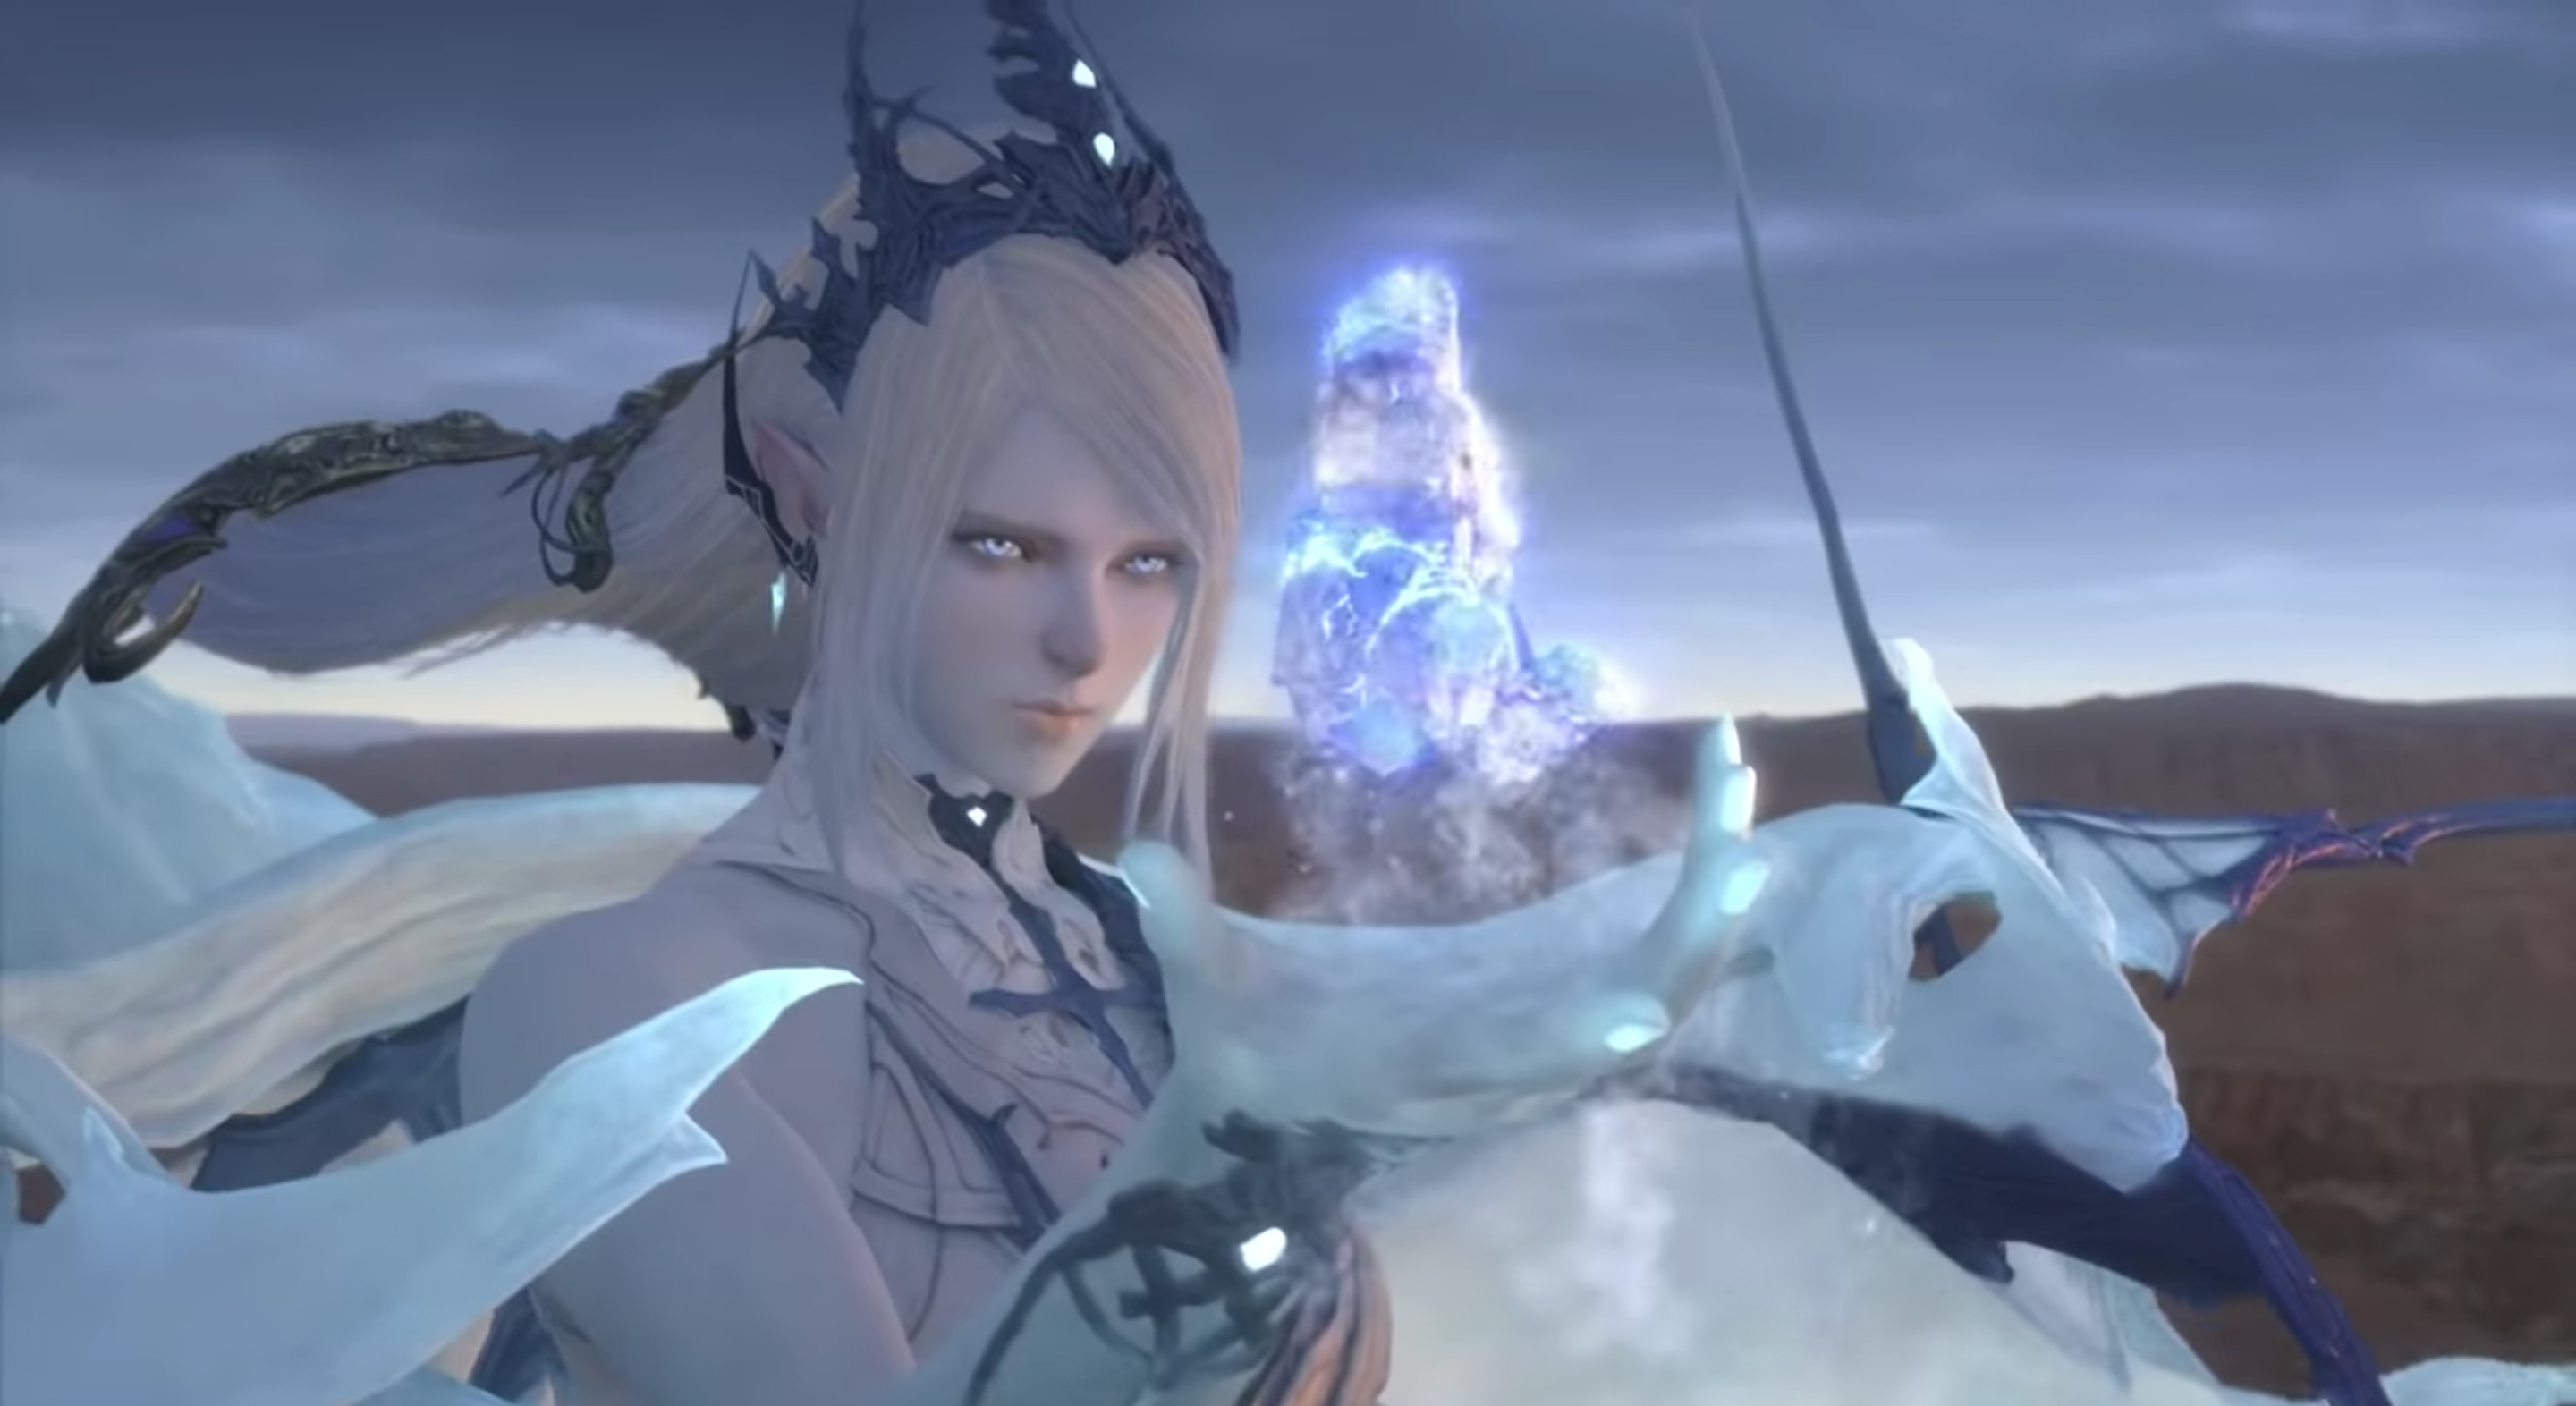 A new vision of the summon Shiva is shown in the Final Fantasy XVI reveal trailer.